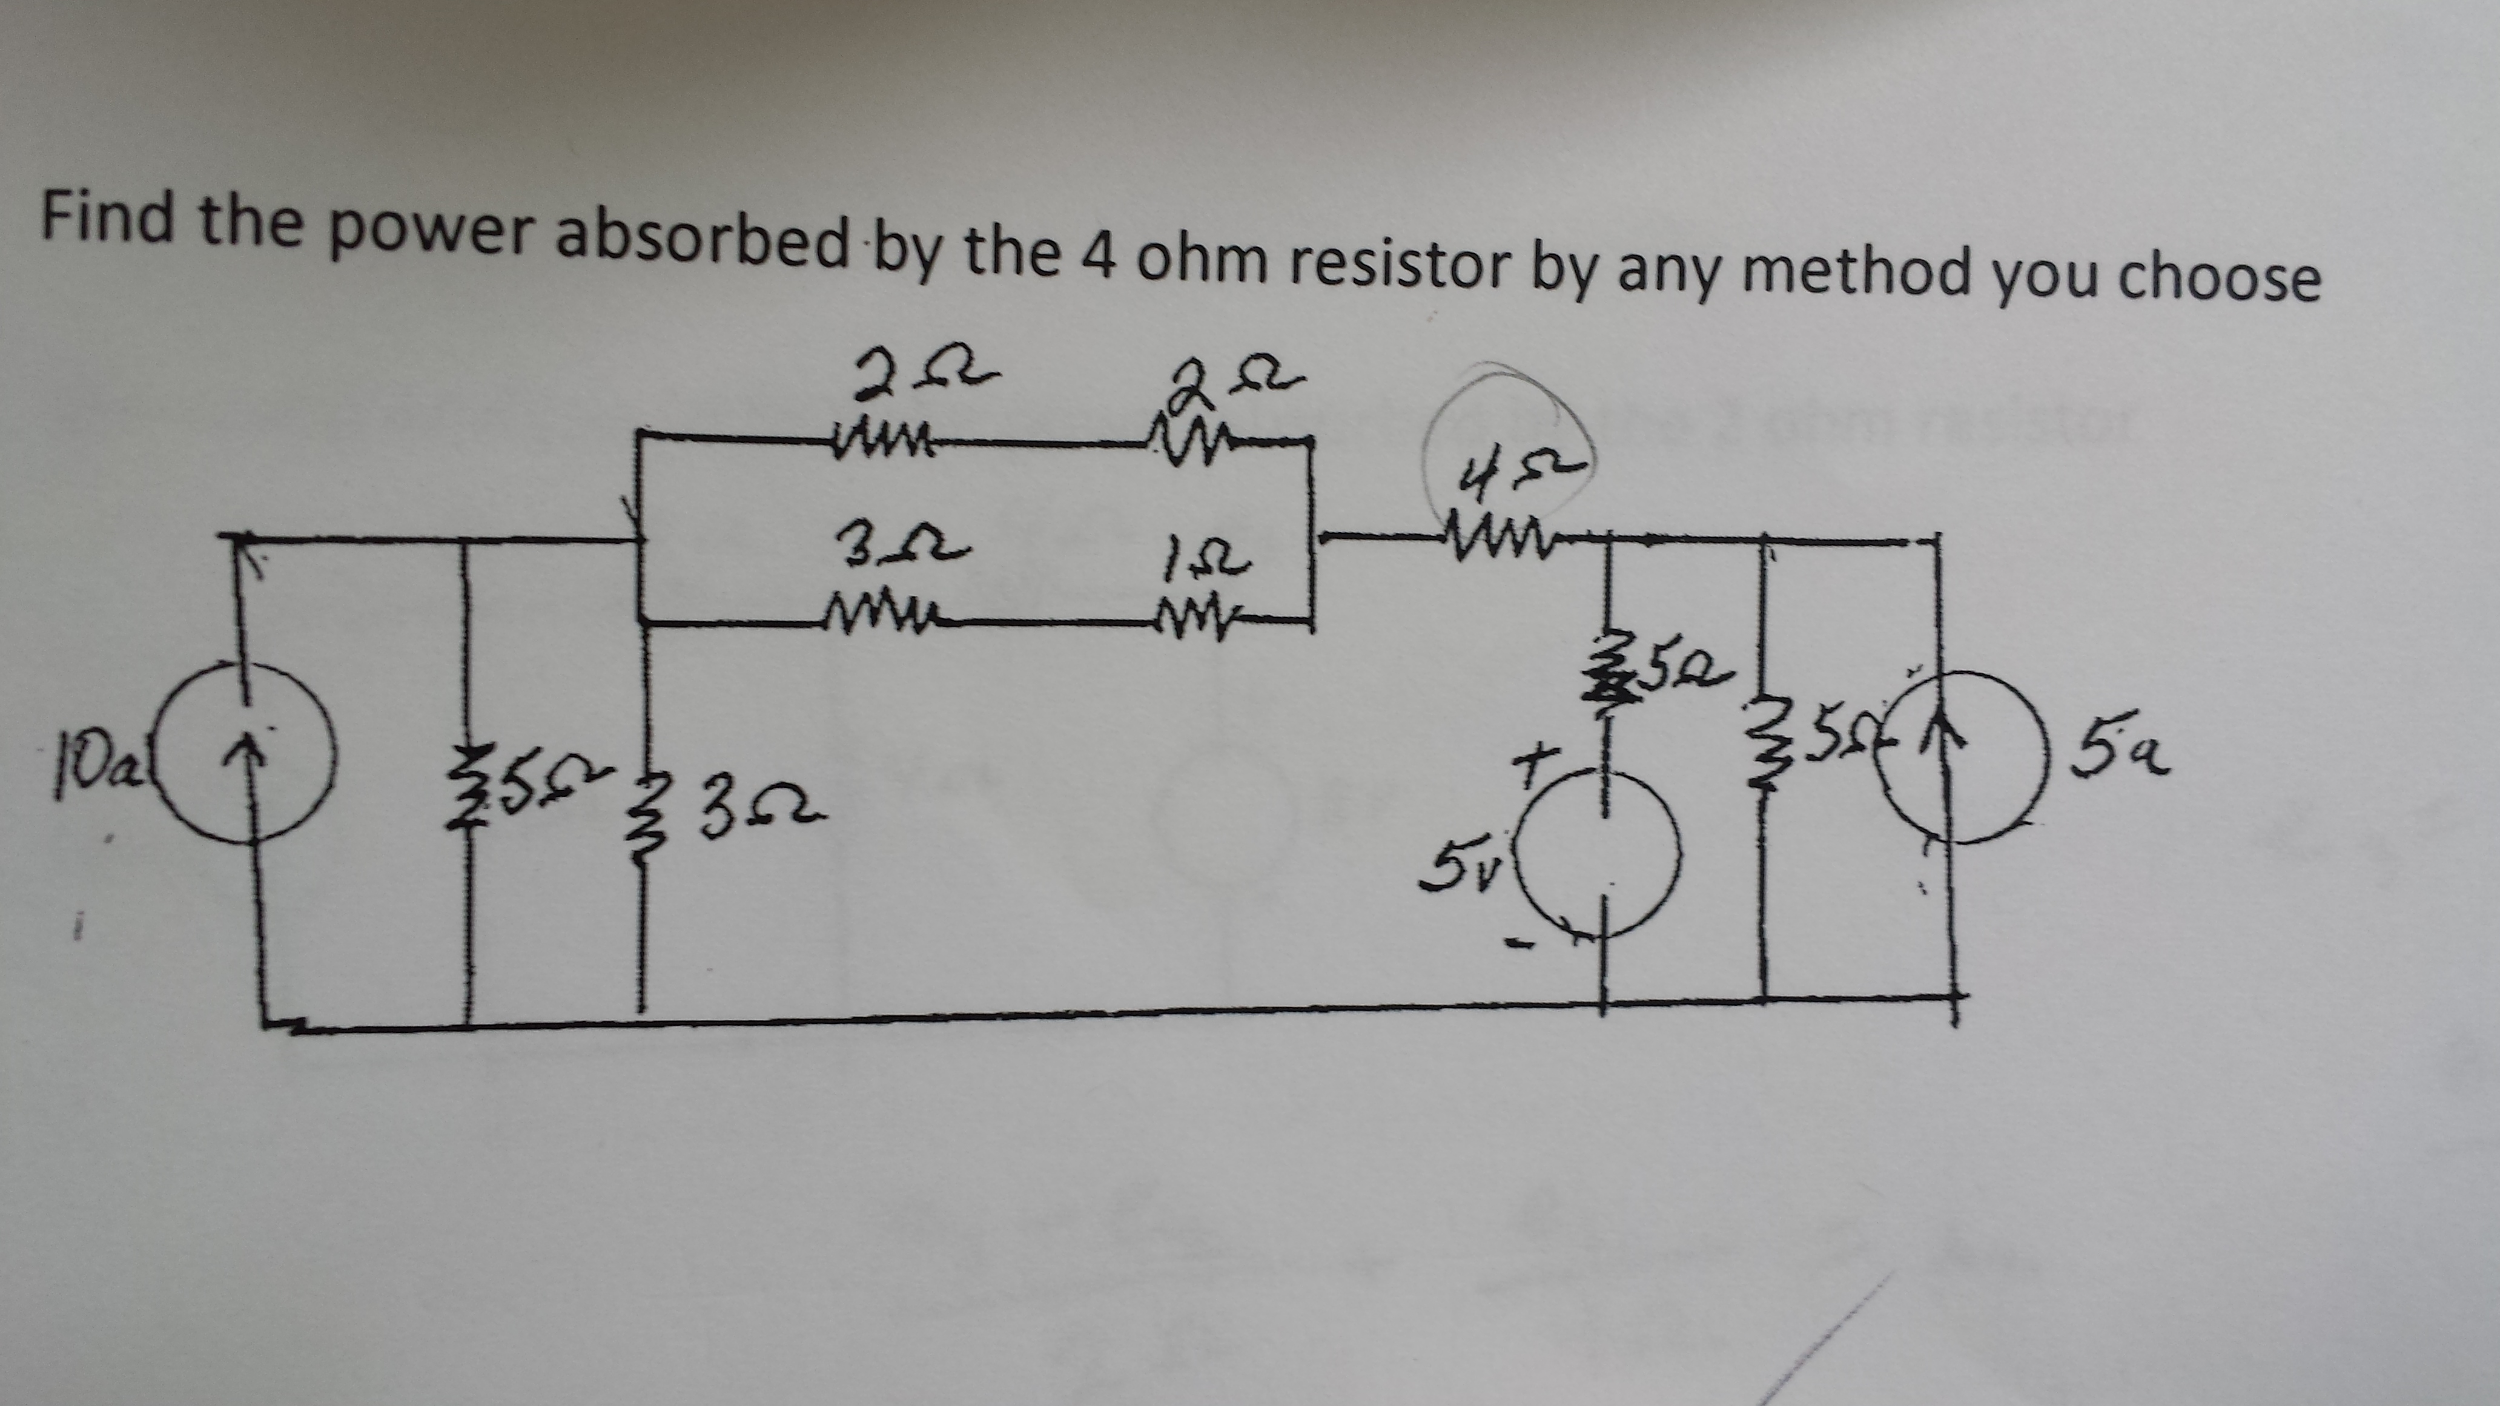 Find the power absorbed by the 4 Ohm resistor by a